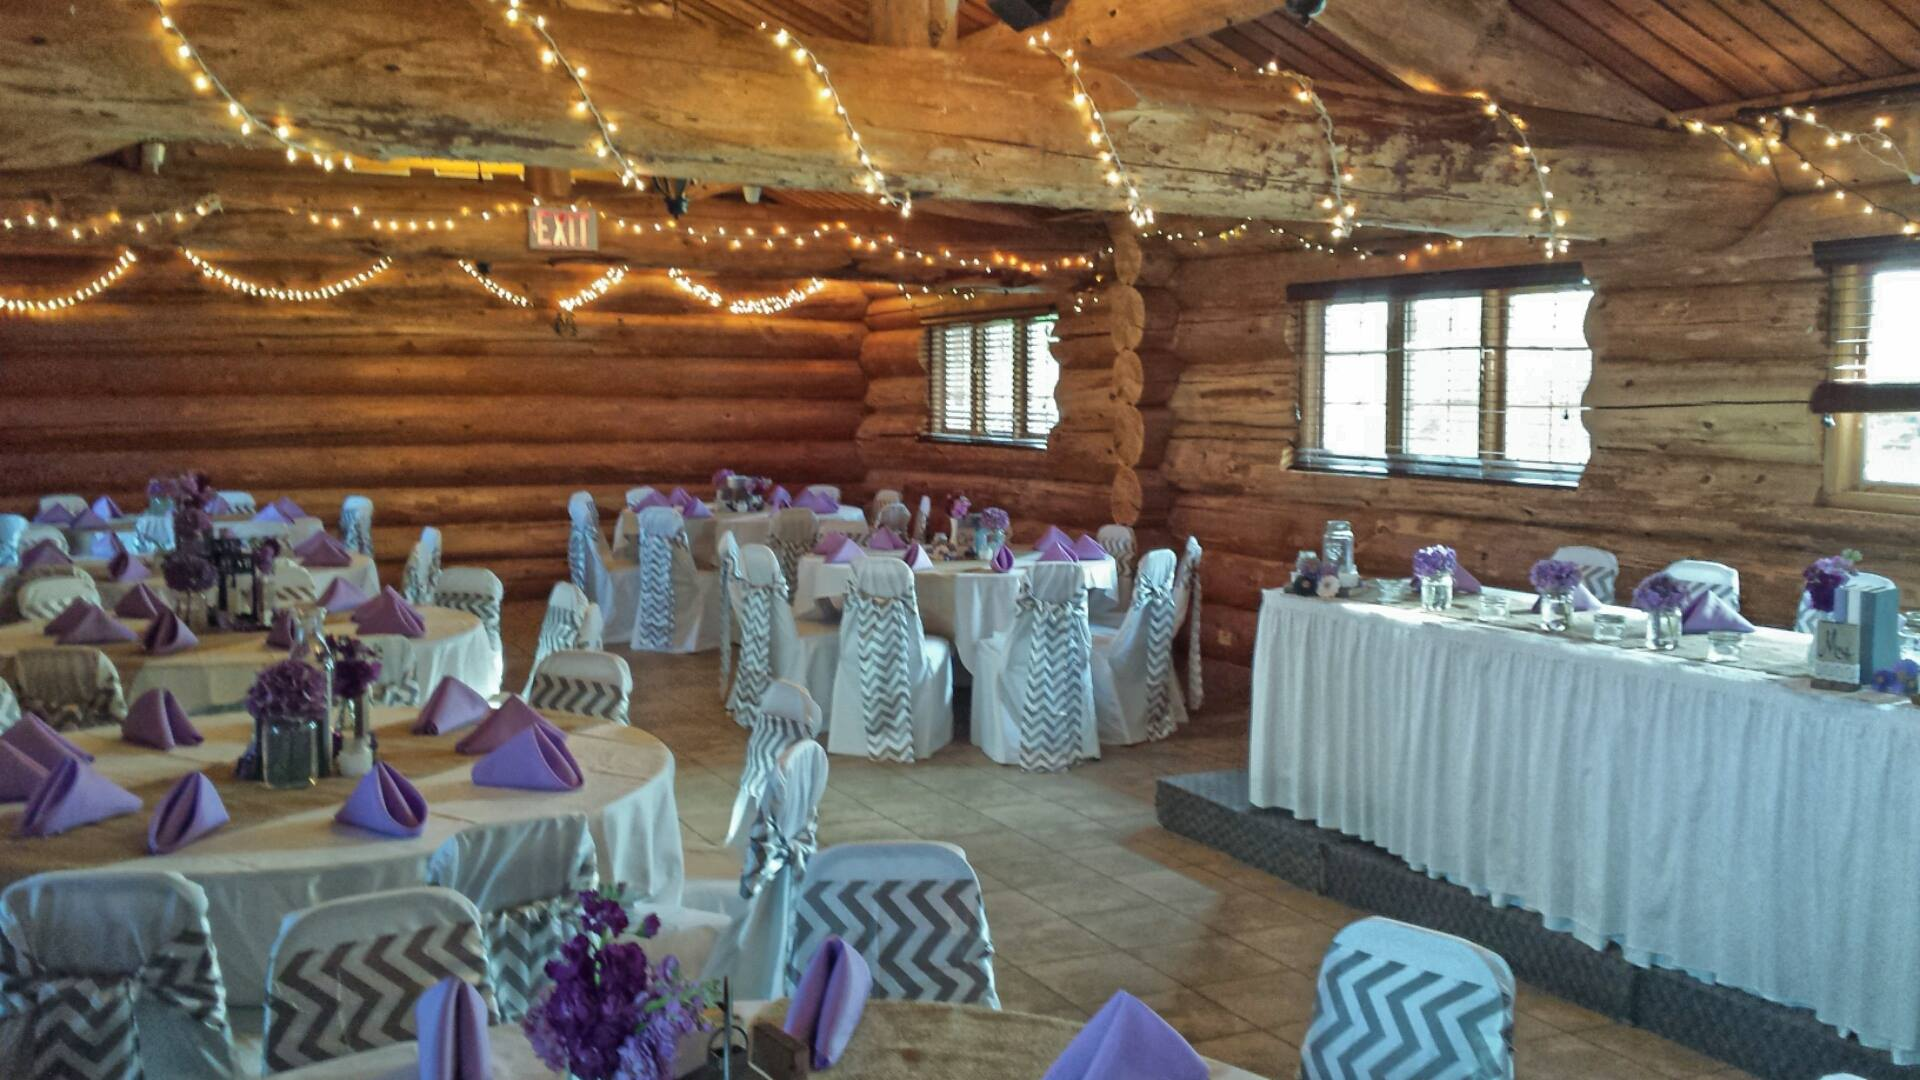 wedding chair cover rentals edmonton pads non slip pictures of past weddings all west